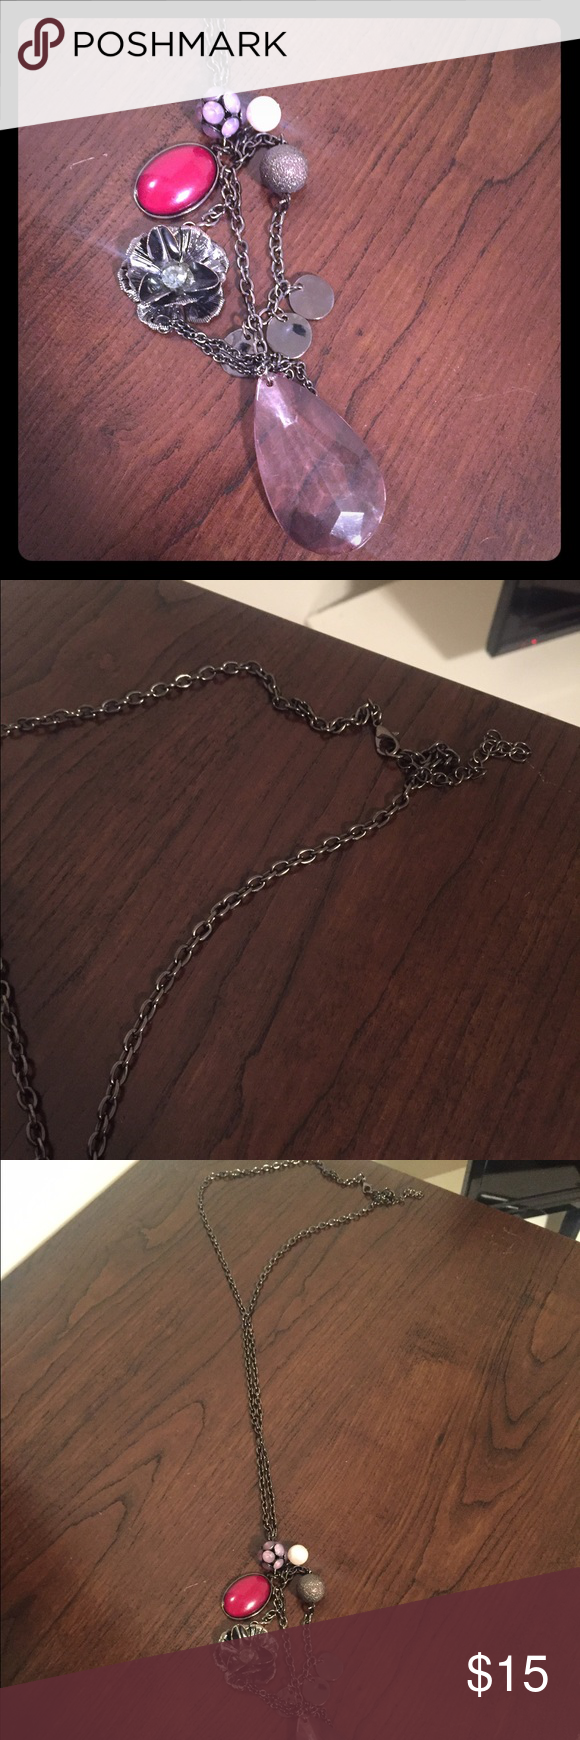 Long necklace Brand new. Worn a couple times Jewelry Necklaces